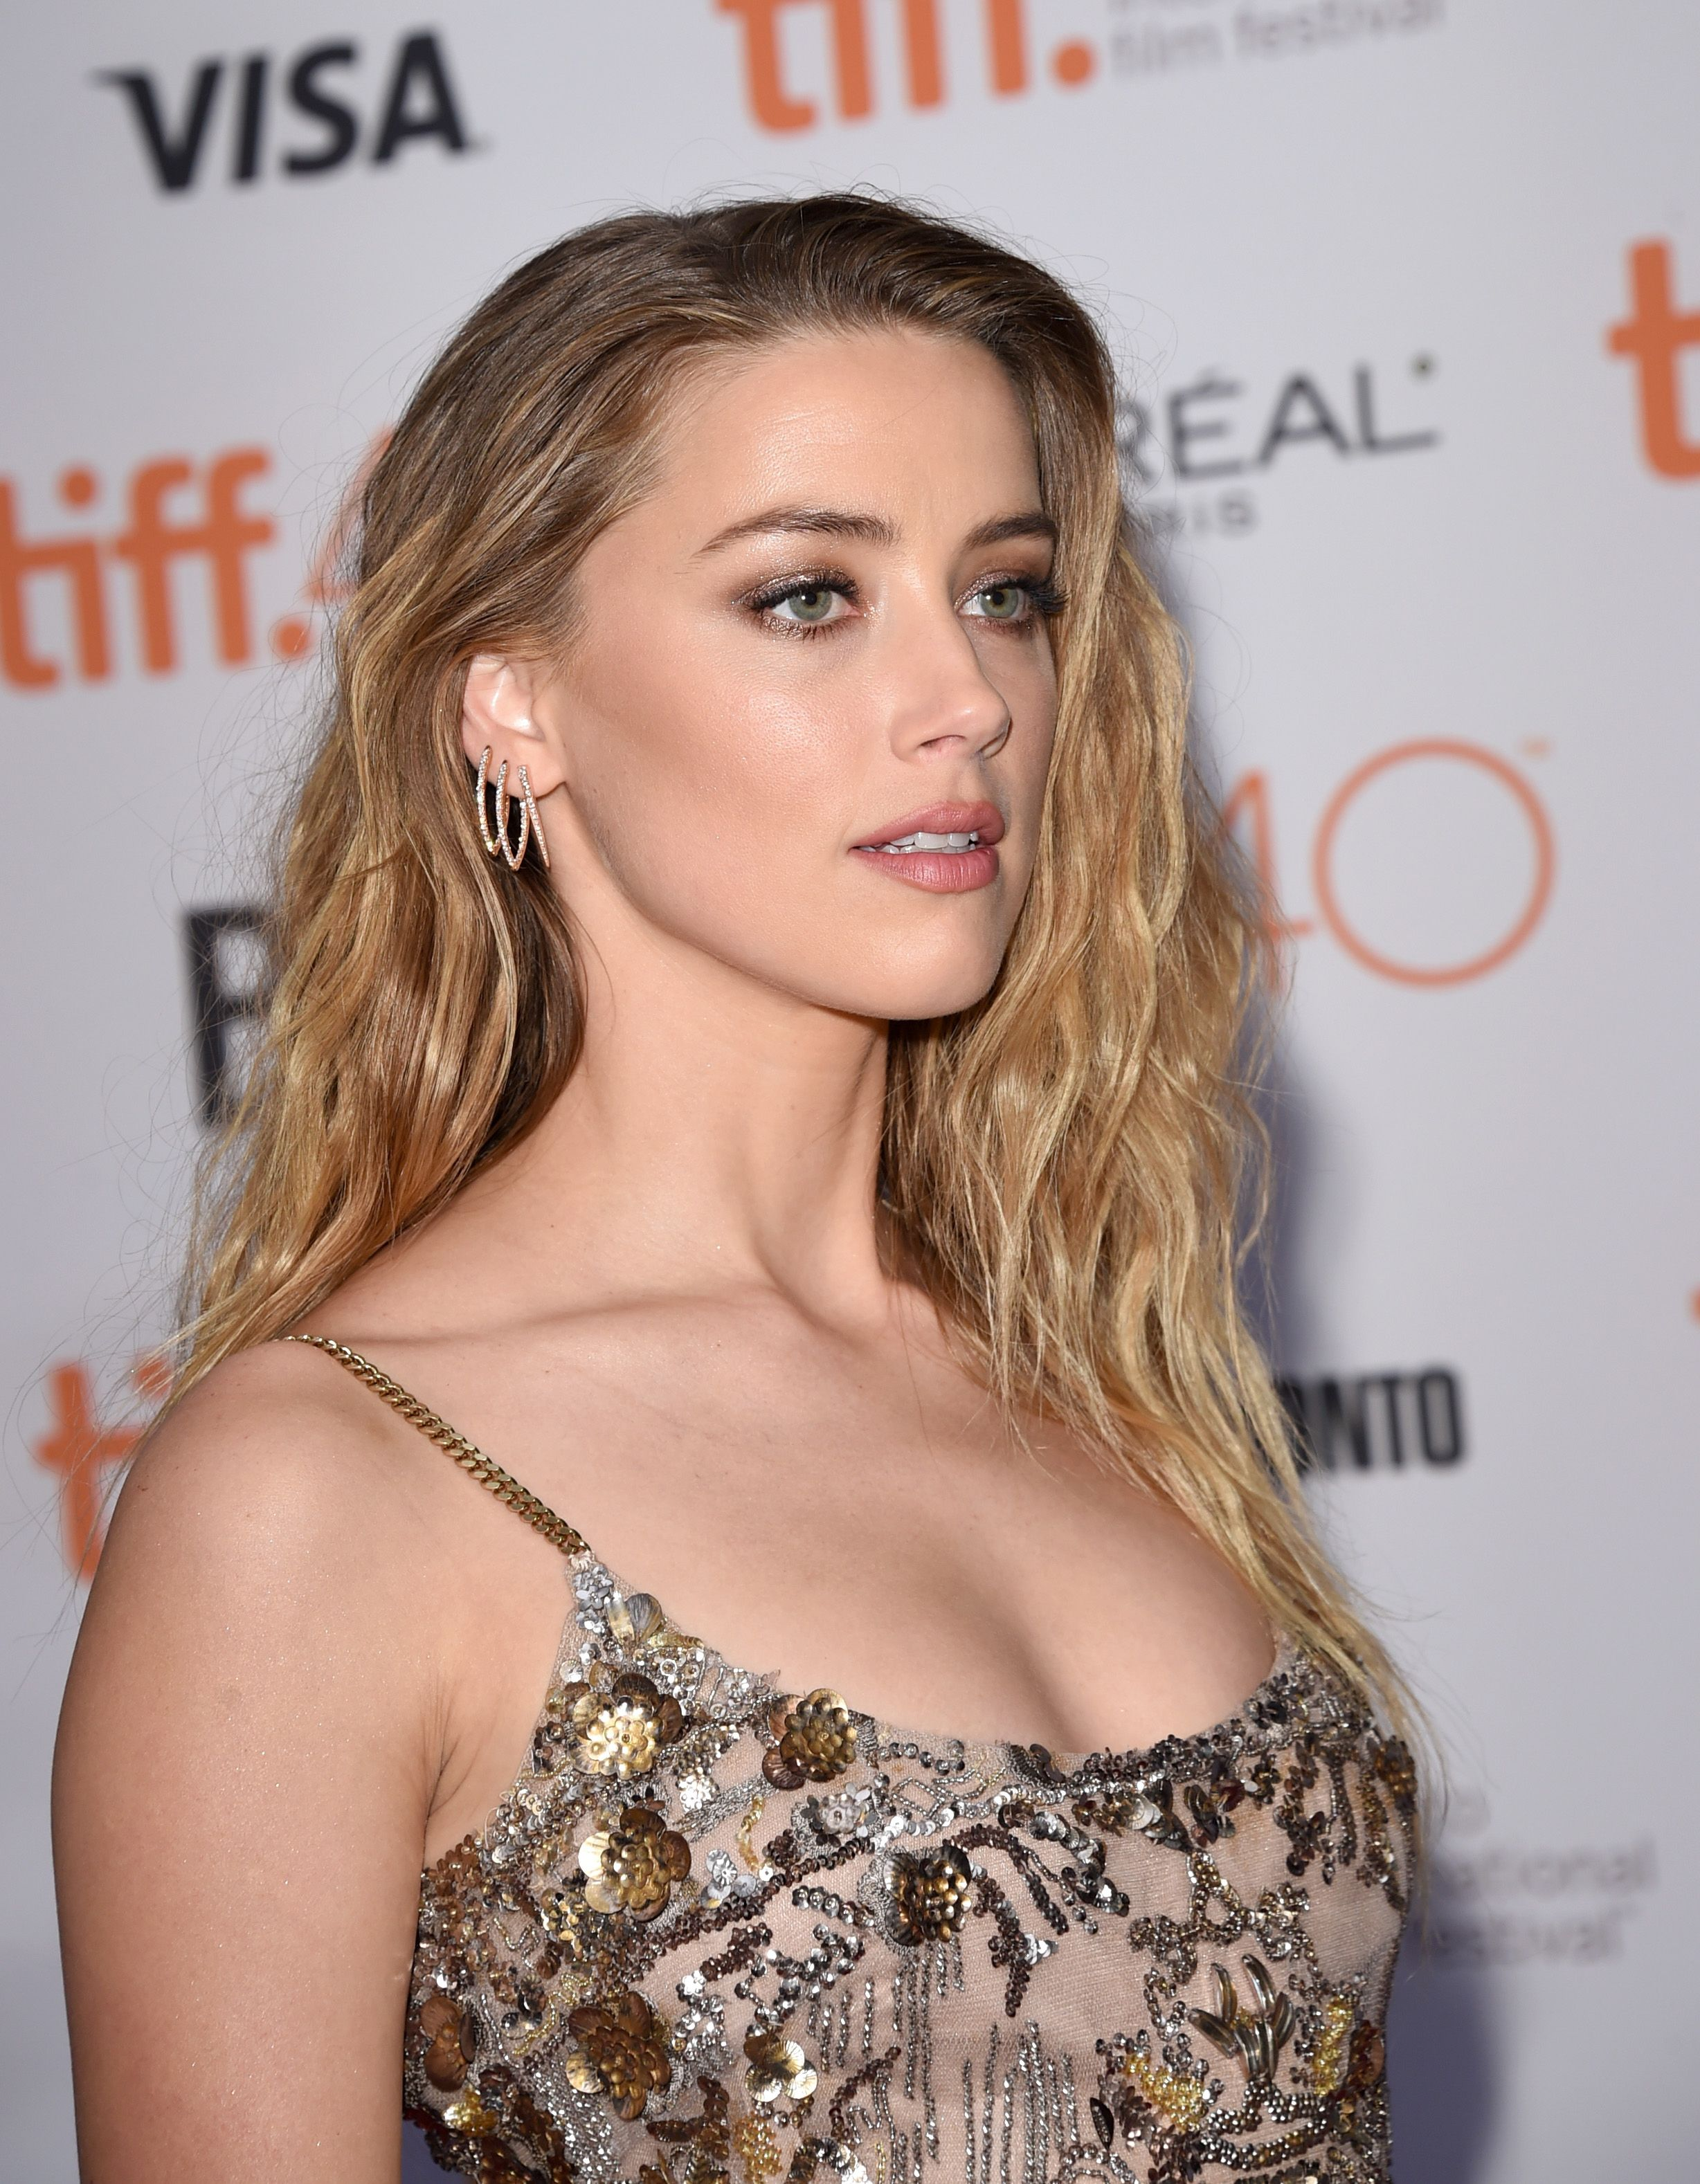 Amber 7 Jpg Amber Heard Photos Amber Heard Amber Heard Hot